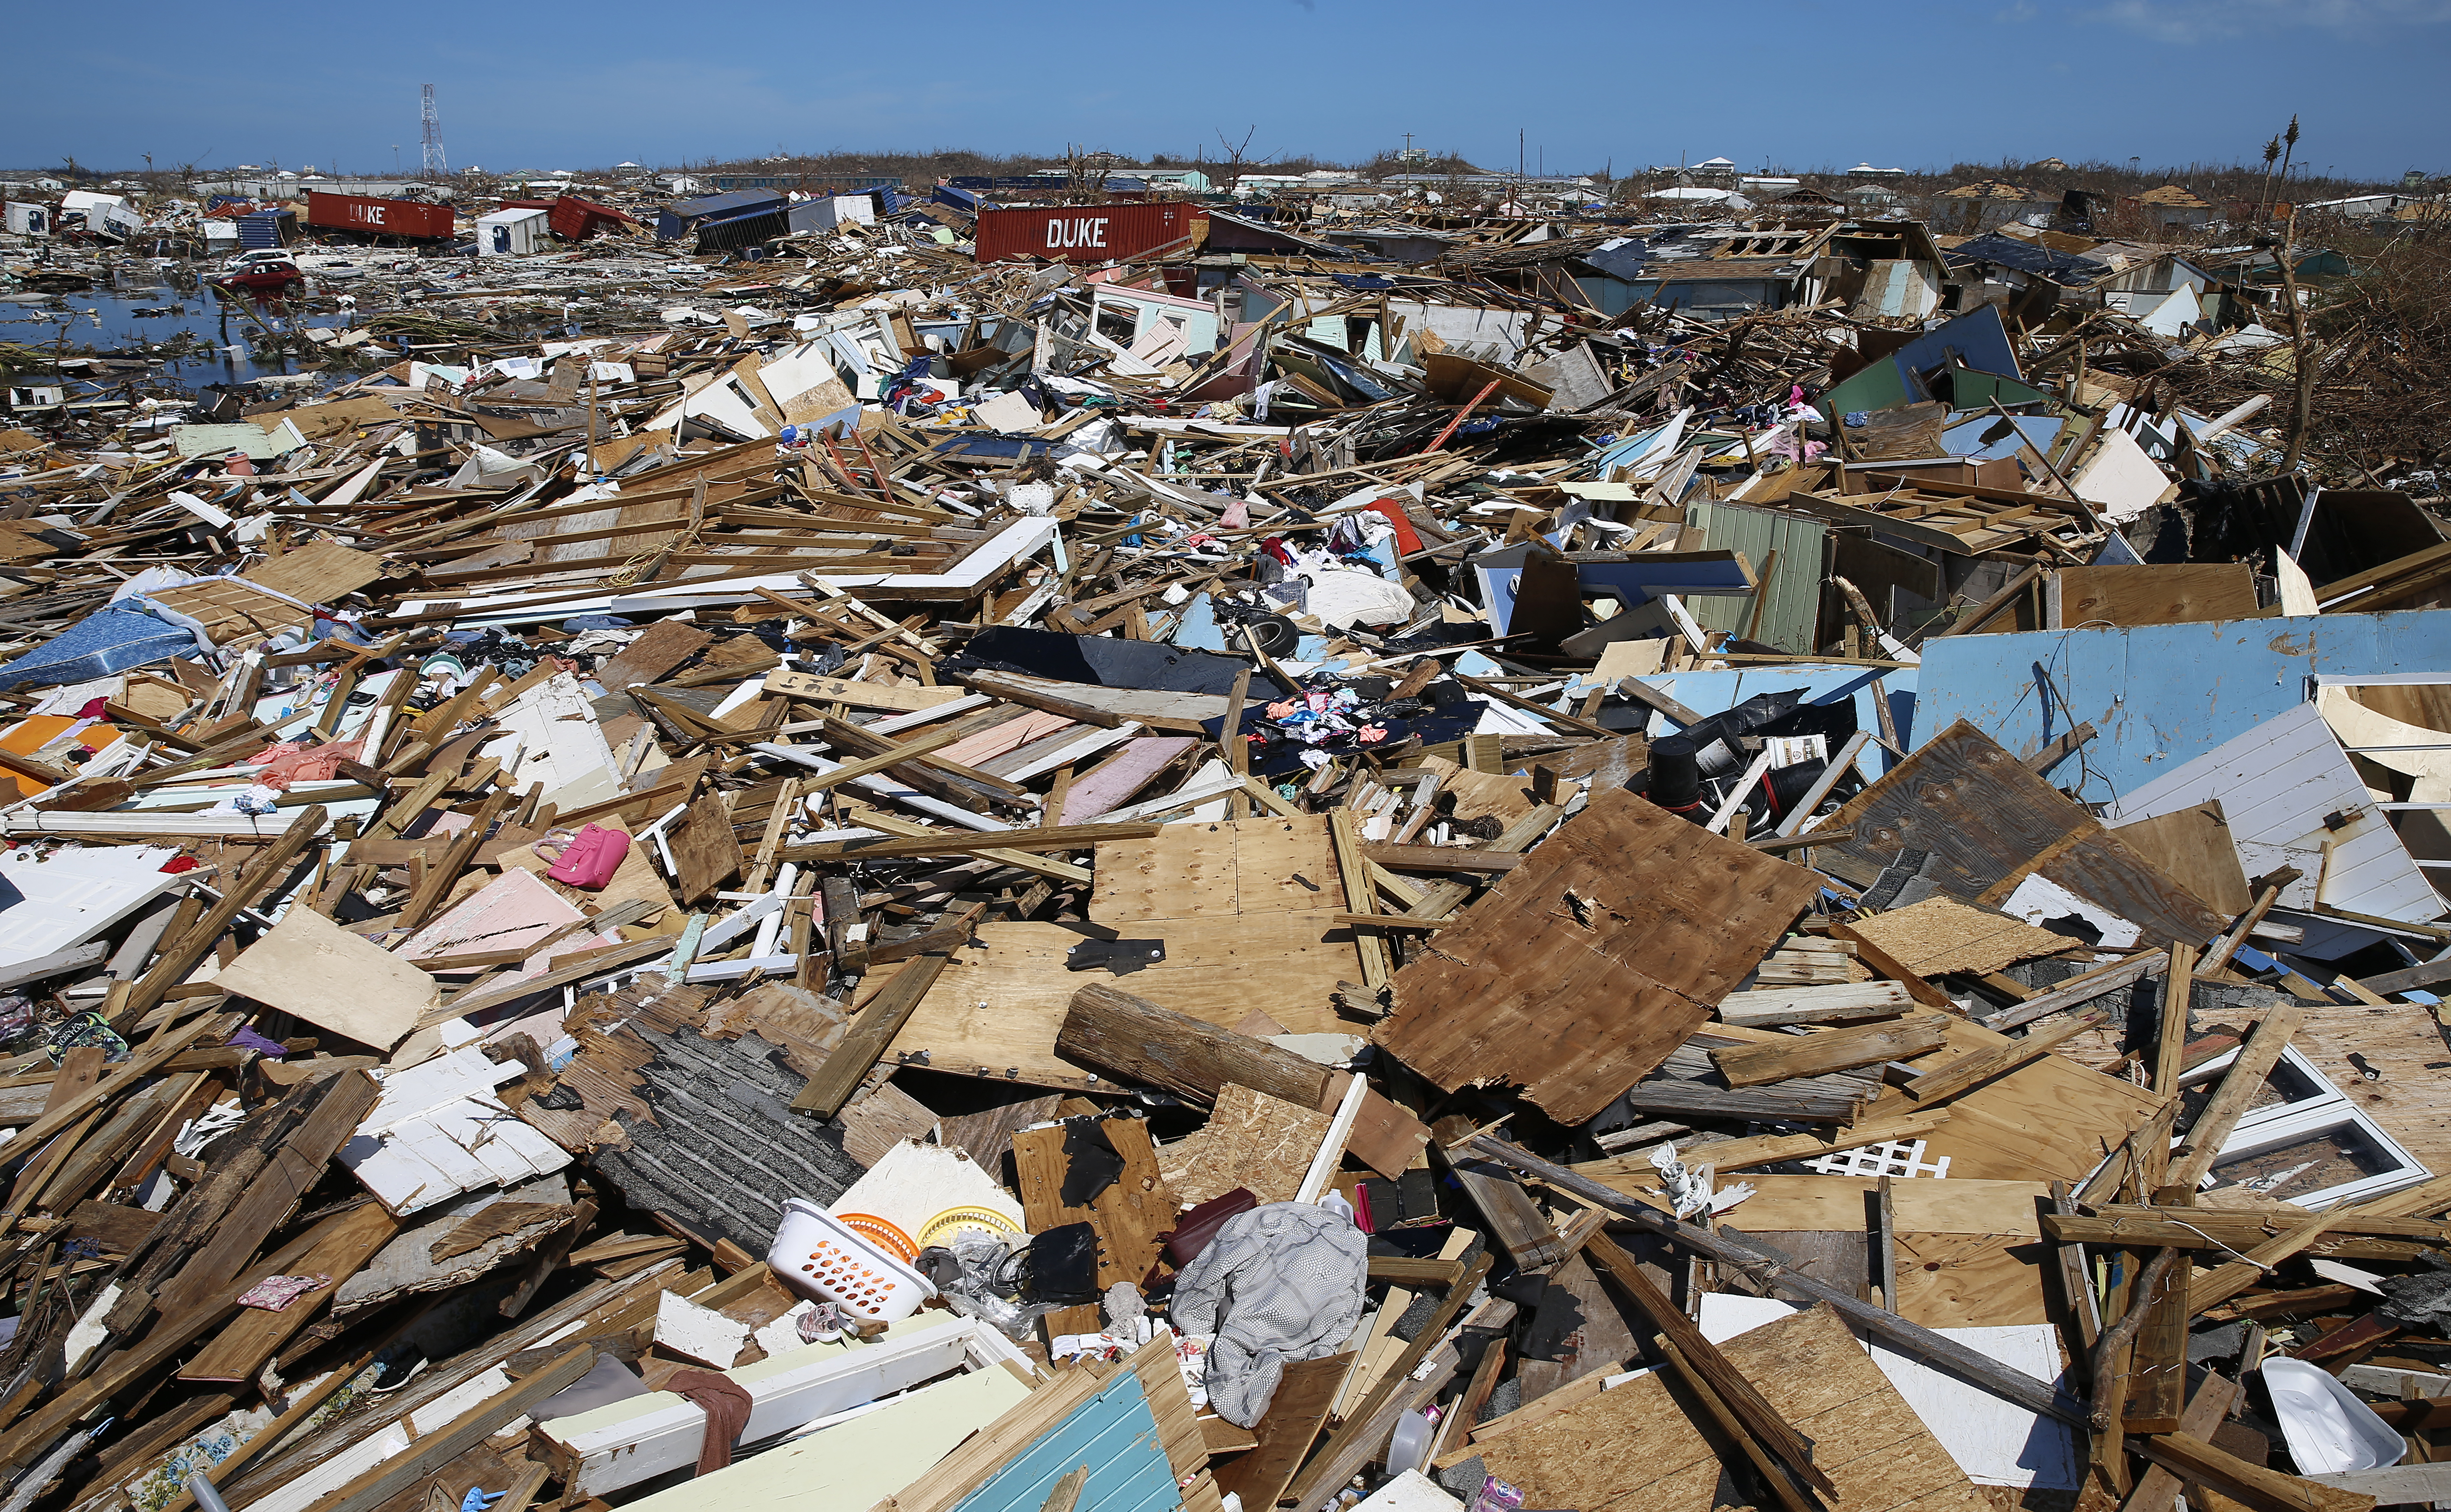 Debris is seen after Hurricane Dorian passed through in The Mudd area of Marsh Harbour on September 5, 2019 in Great Abaco Island, Bahamas. (Jose Jimenez/Getty Images)